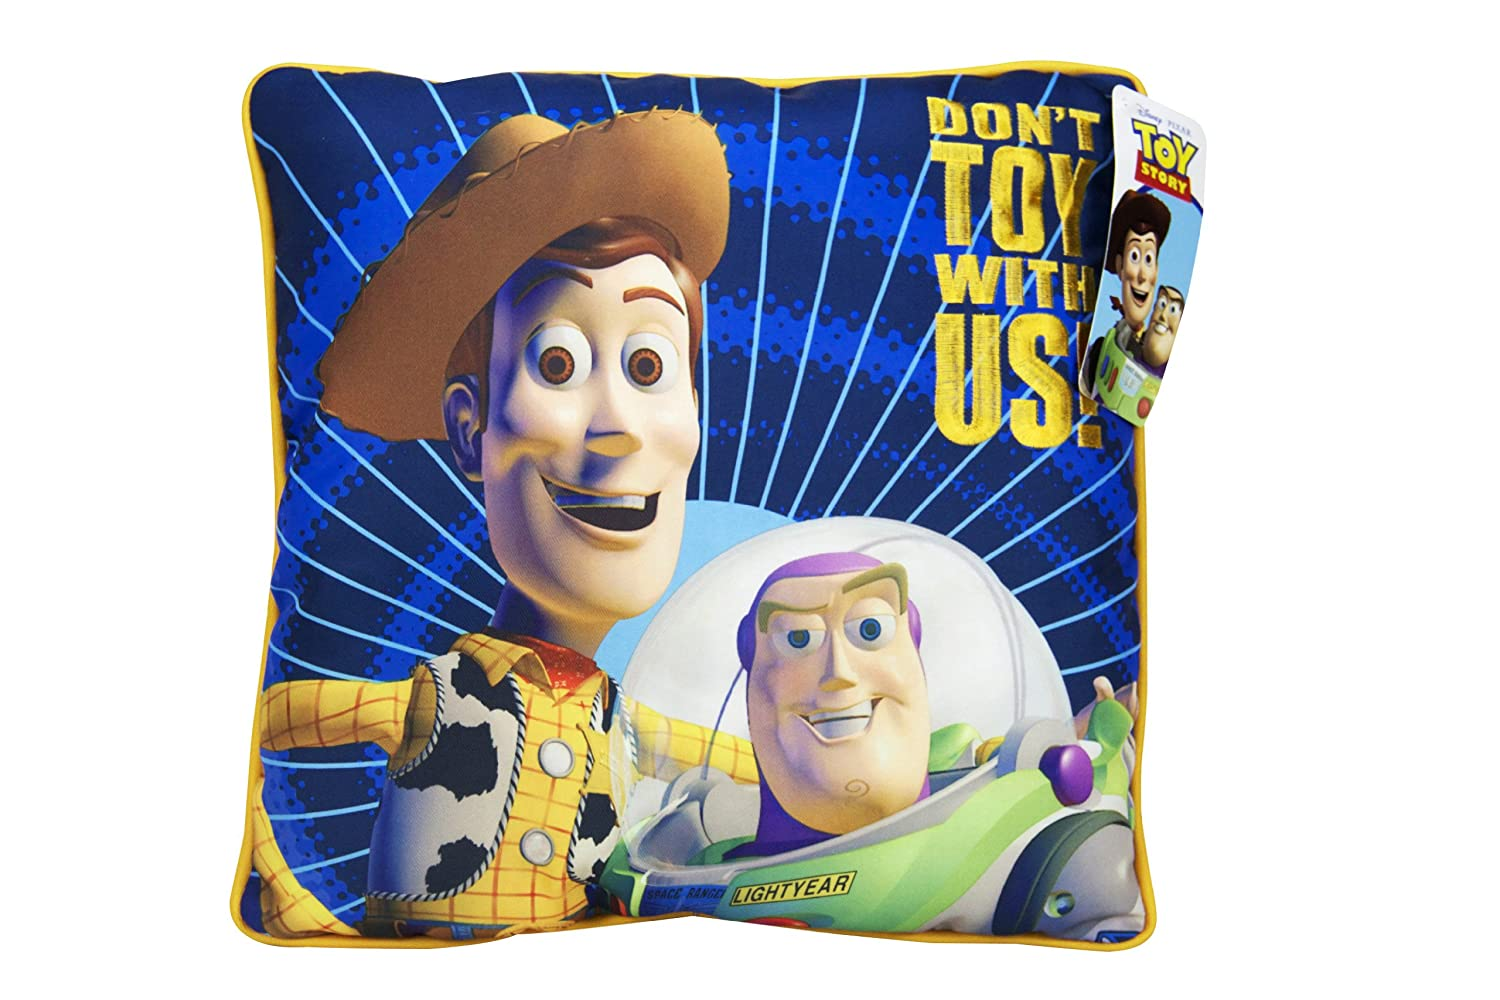 Disney Toy Story Don't Toy with Us Decorative Pillow Jay Franco and Sons Inc. JF29045SDY